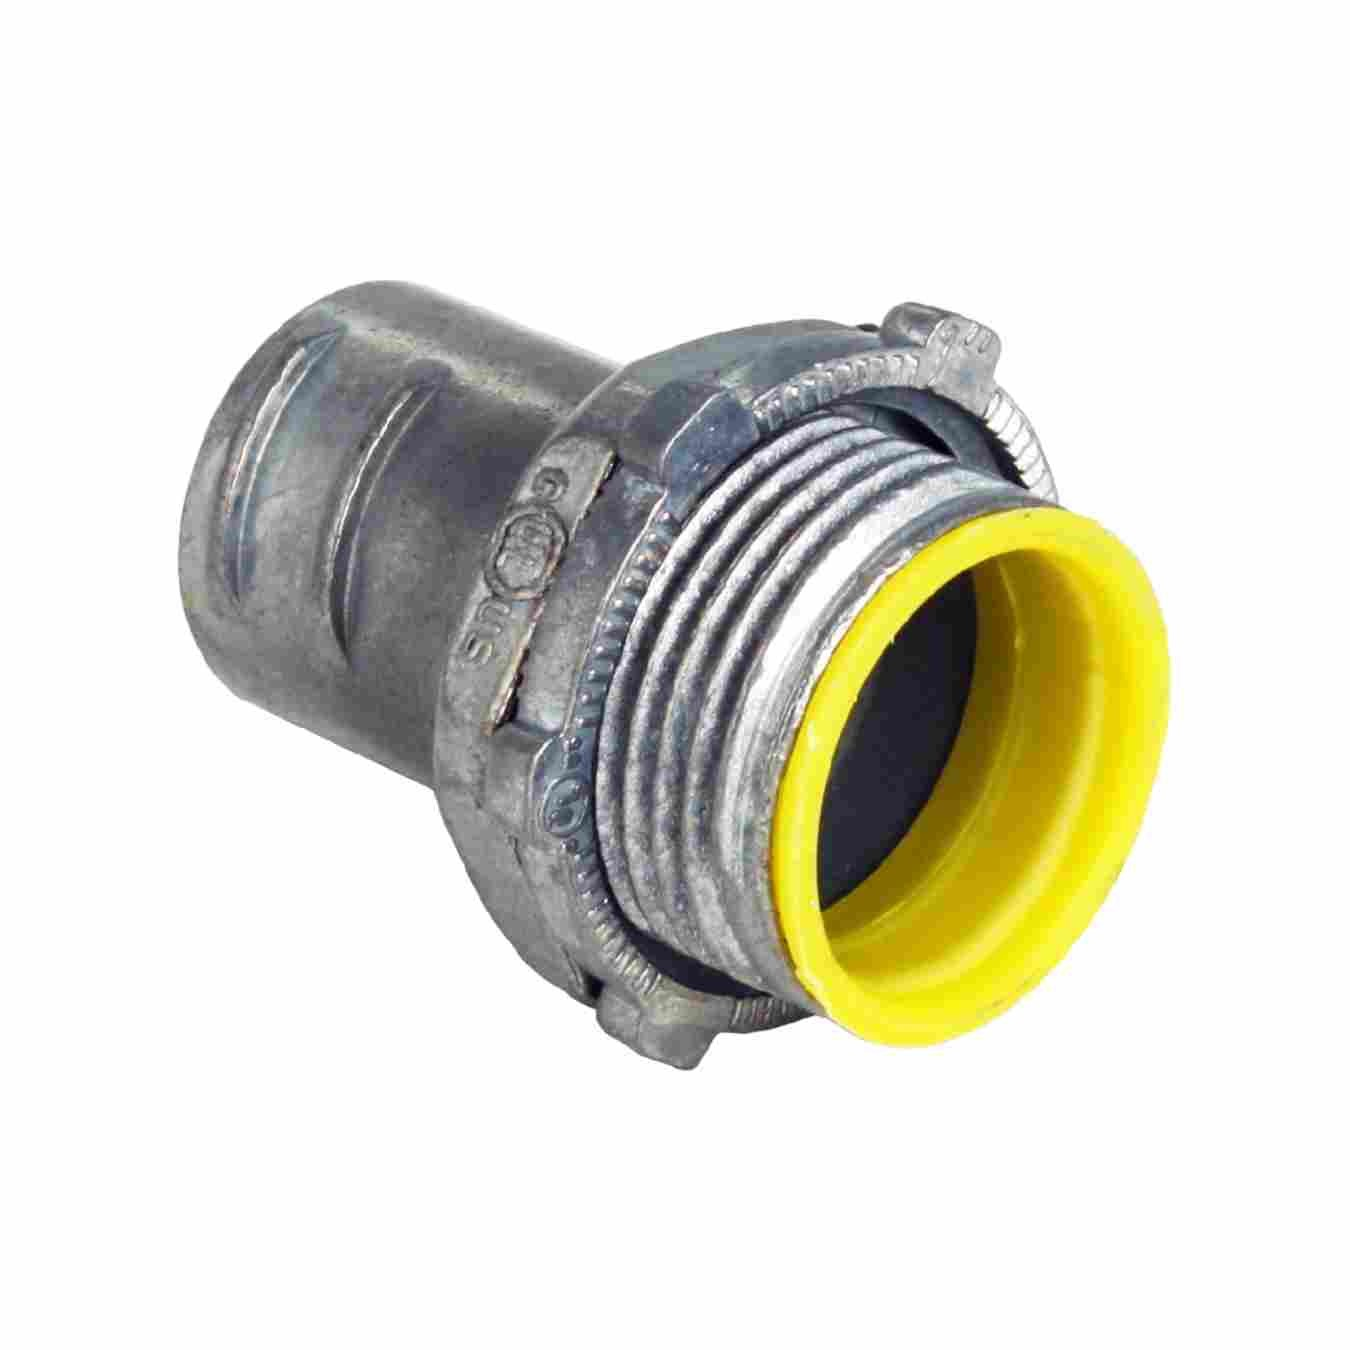 FLEX CONNECTORS SCREW-IN TYPE WITH INSULATED THROAT